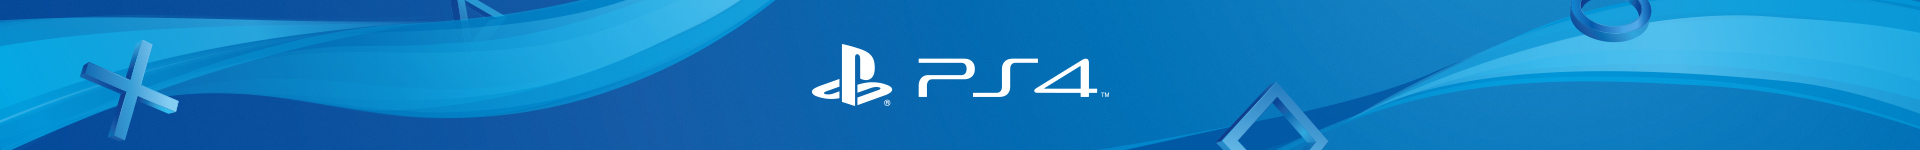 Buy Playstation 4 consoles at Coolshop